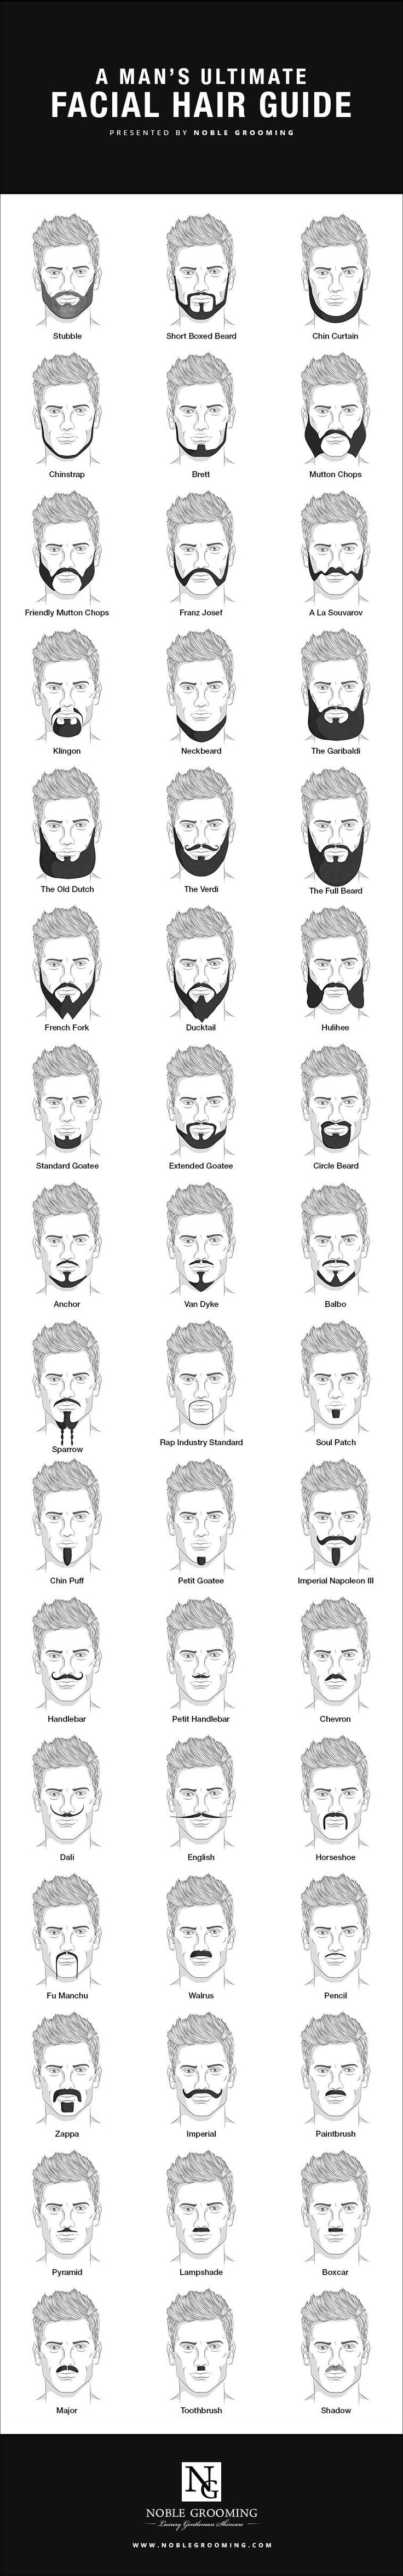 48 Different Facial Hair Styles For Men